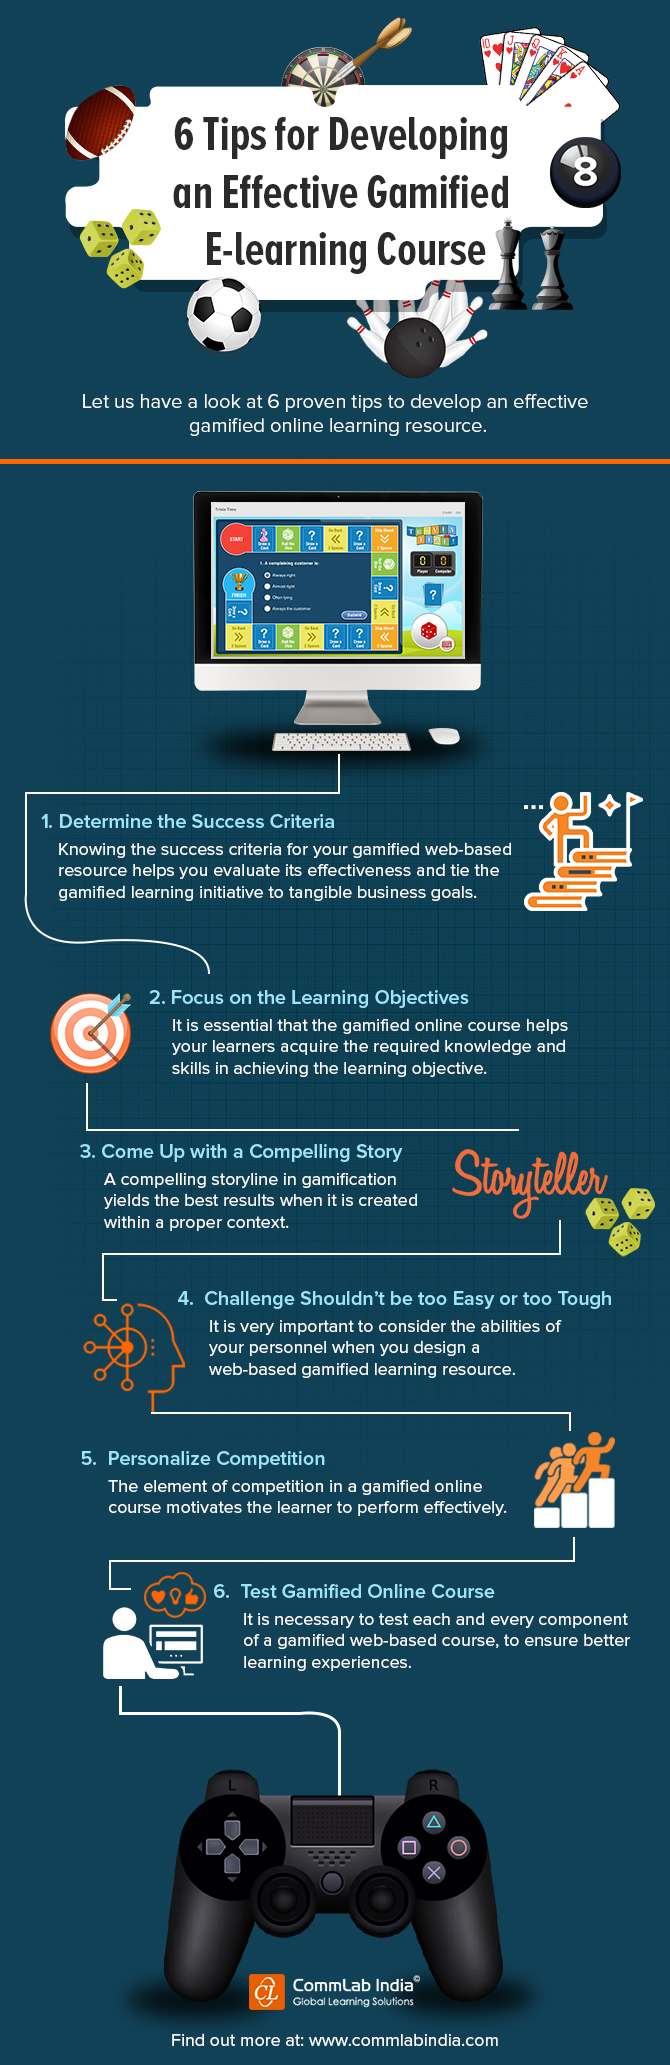 6 Tips for Developing an Effective Gamified E-learning Course [Infographic]